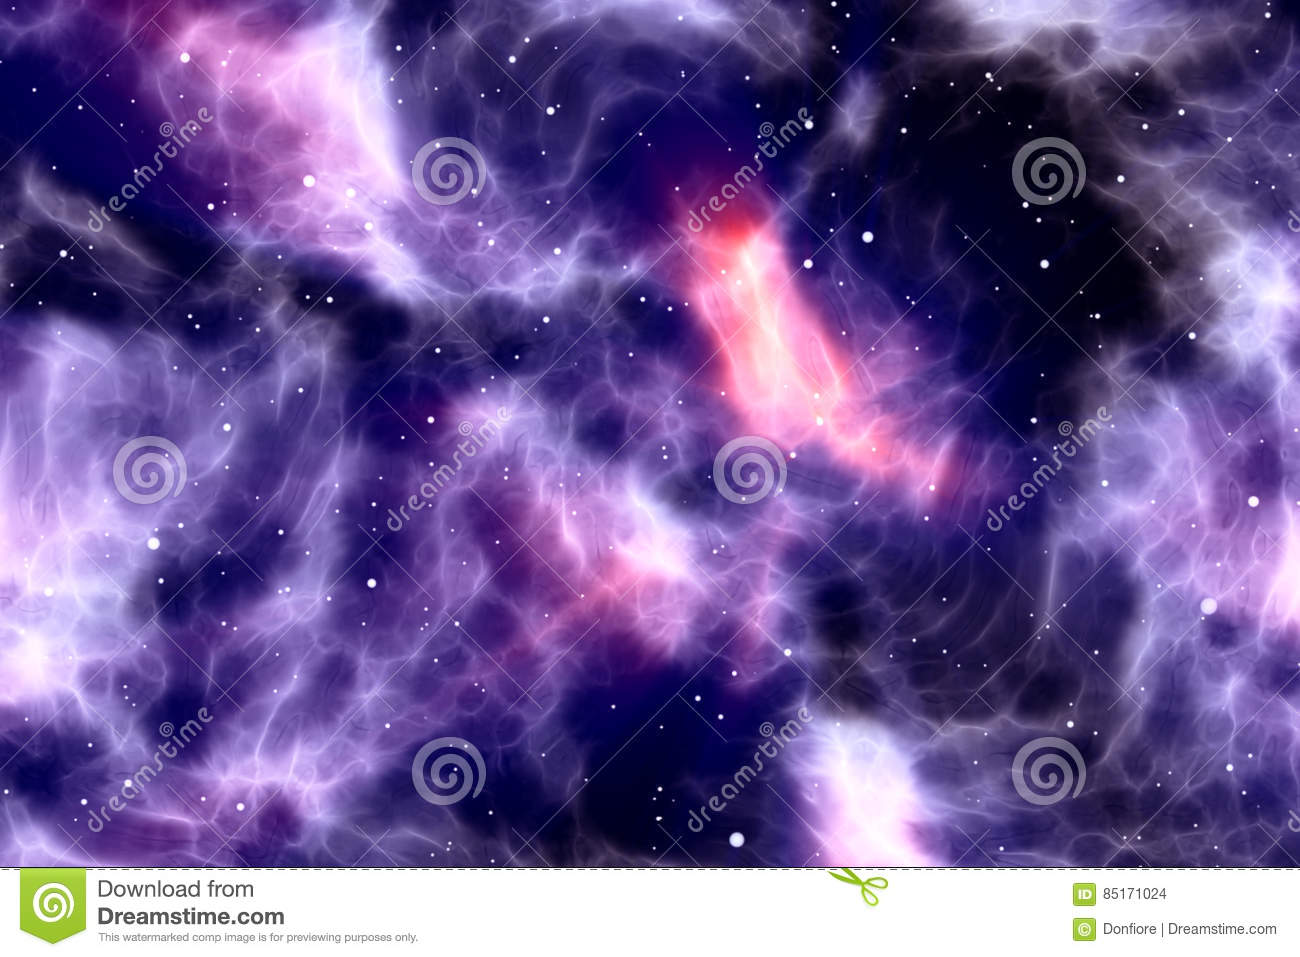 abstract night sky with glitter sparkle stars and nebula, colorful